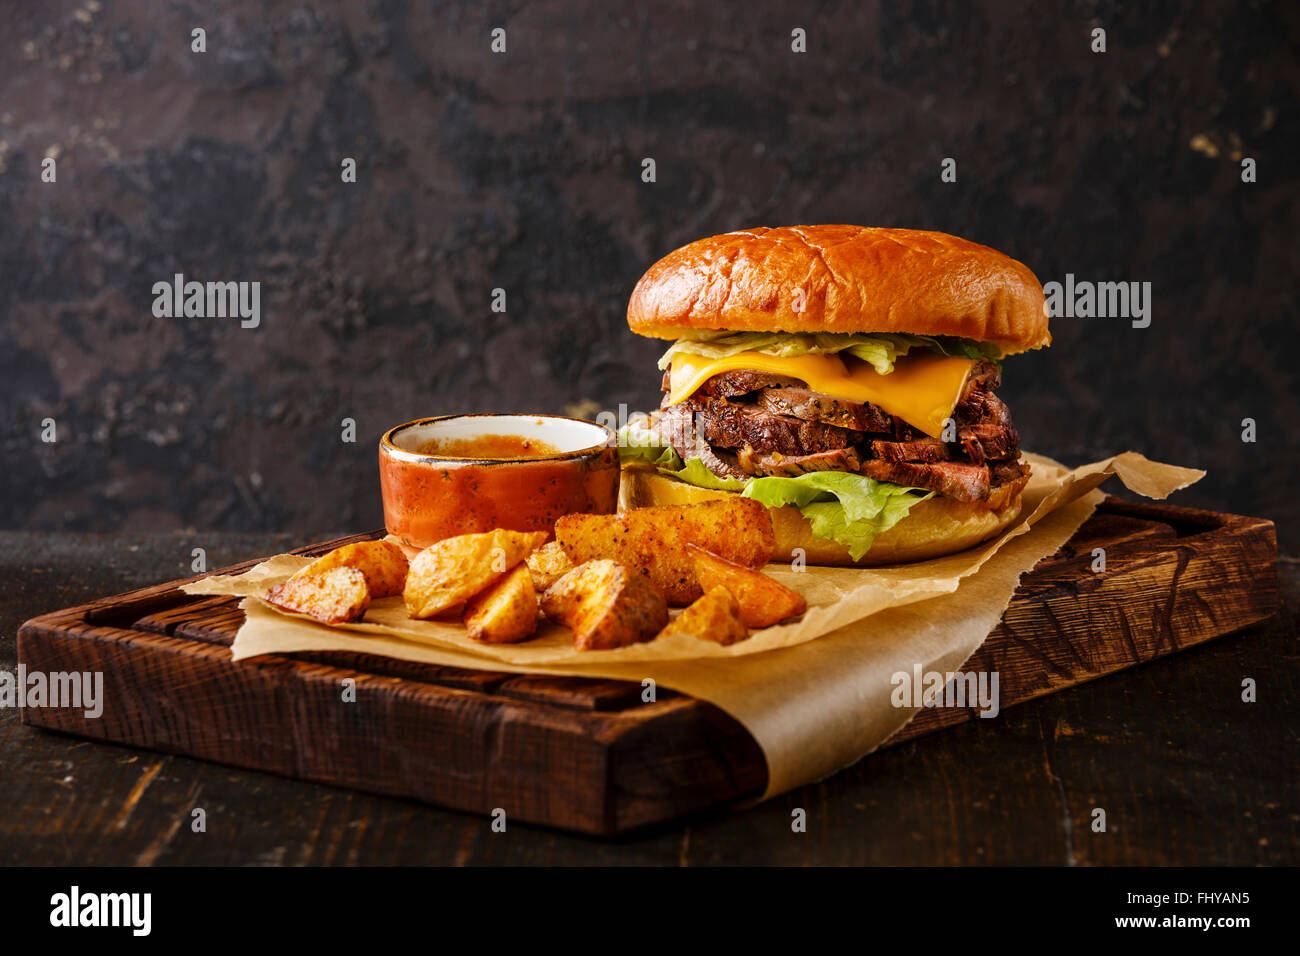 Pastrami Burger Takeaway snack with sliced Roast beef and potato wedges on dark background - Stock Image